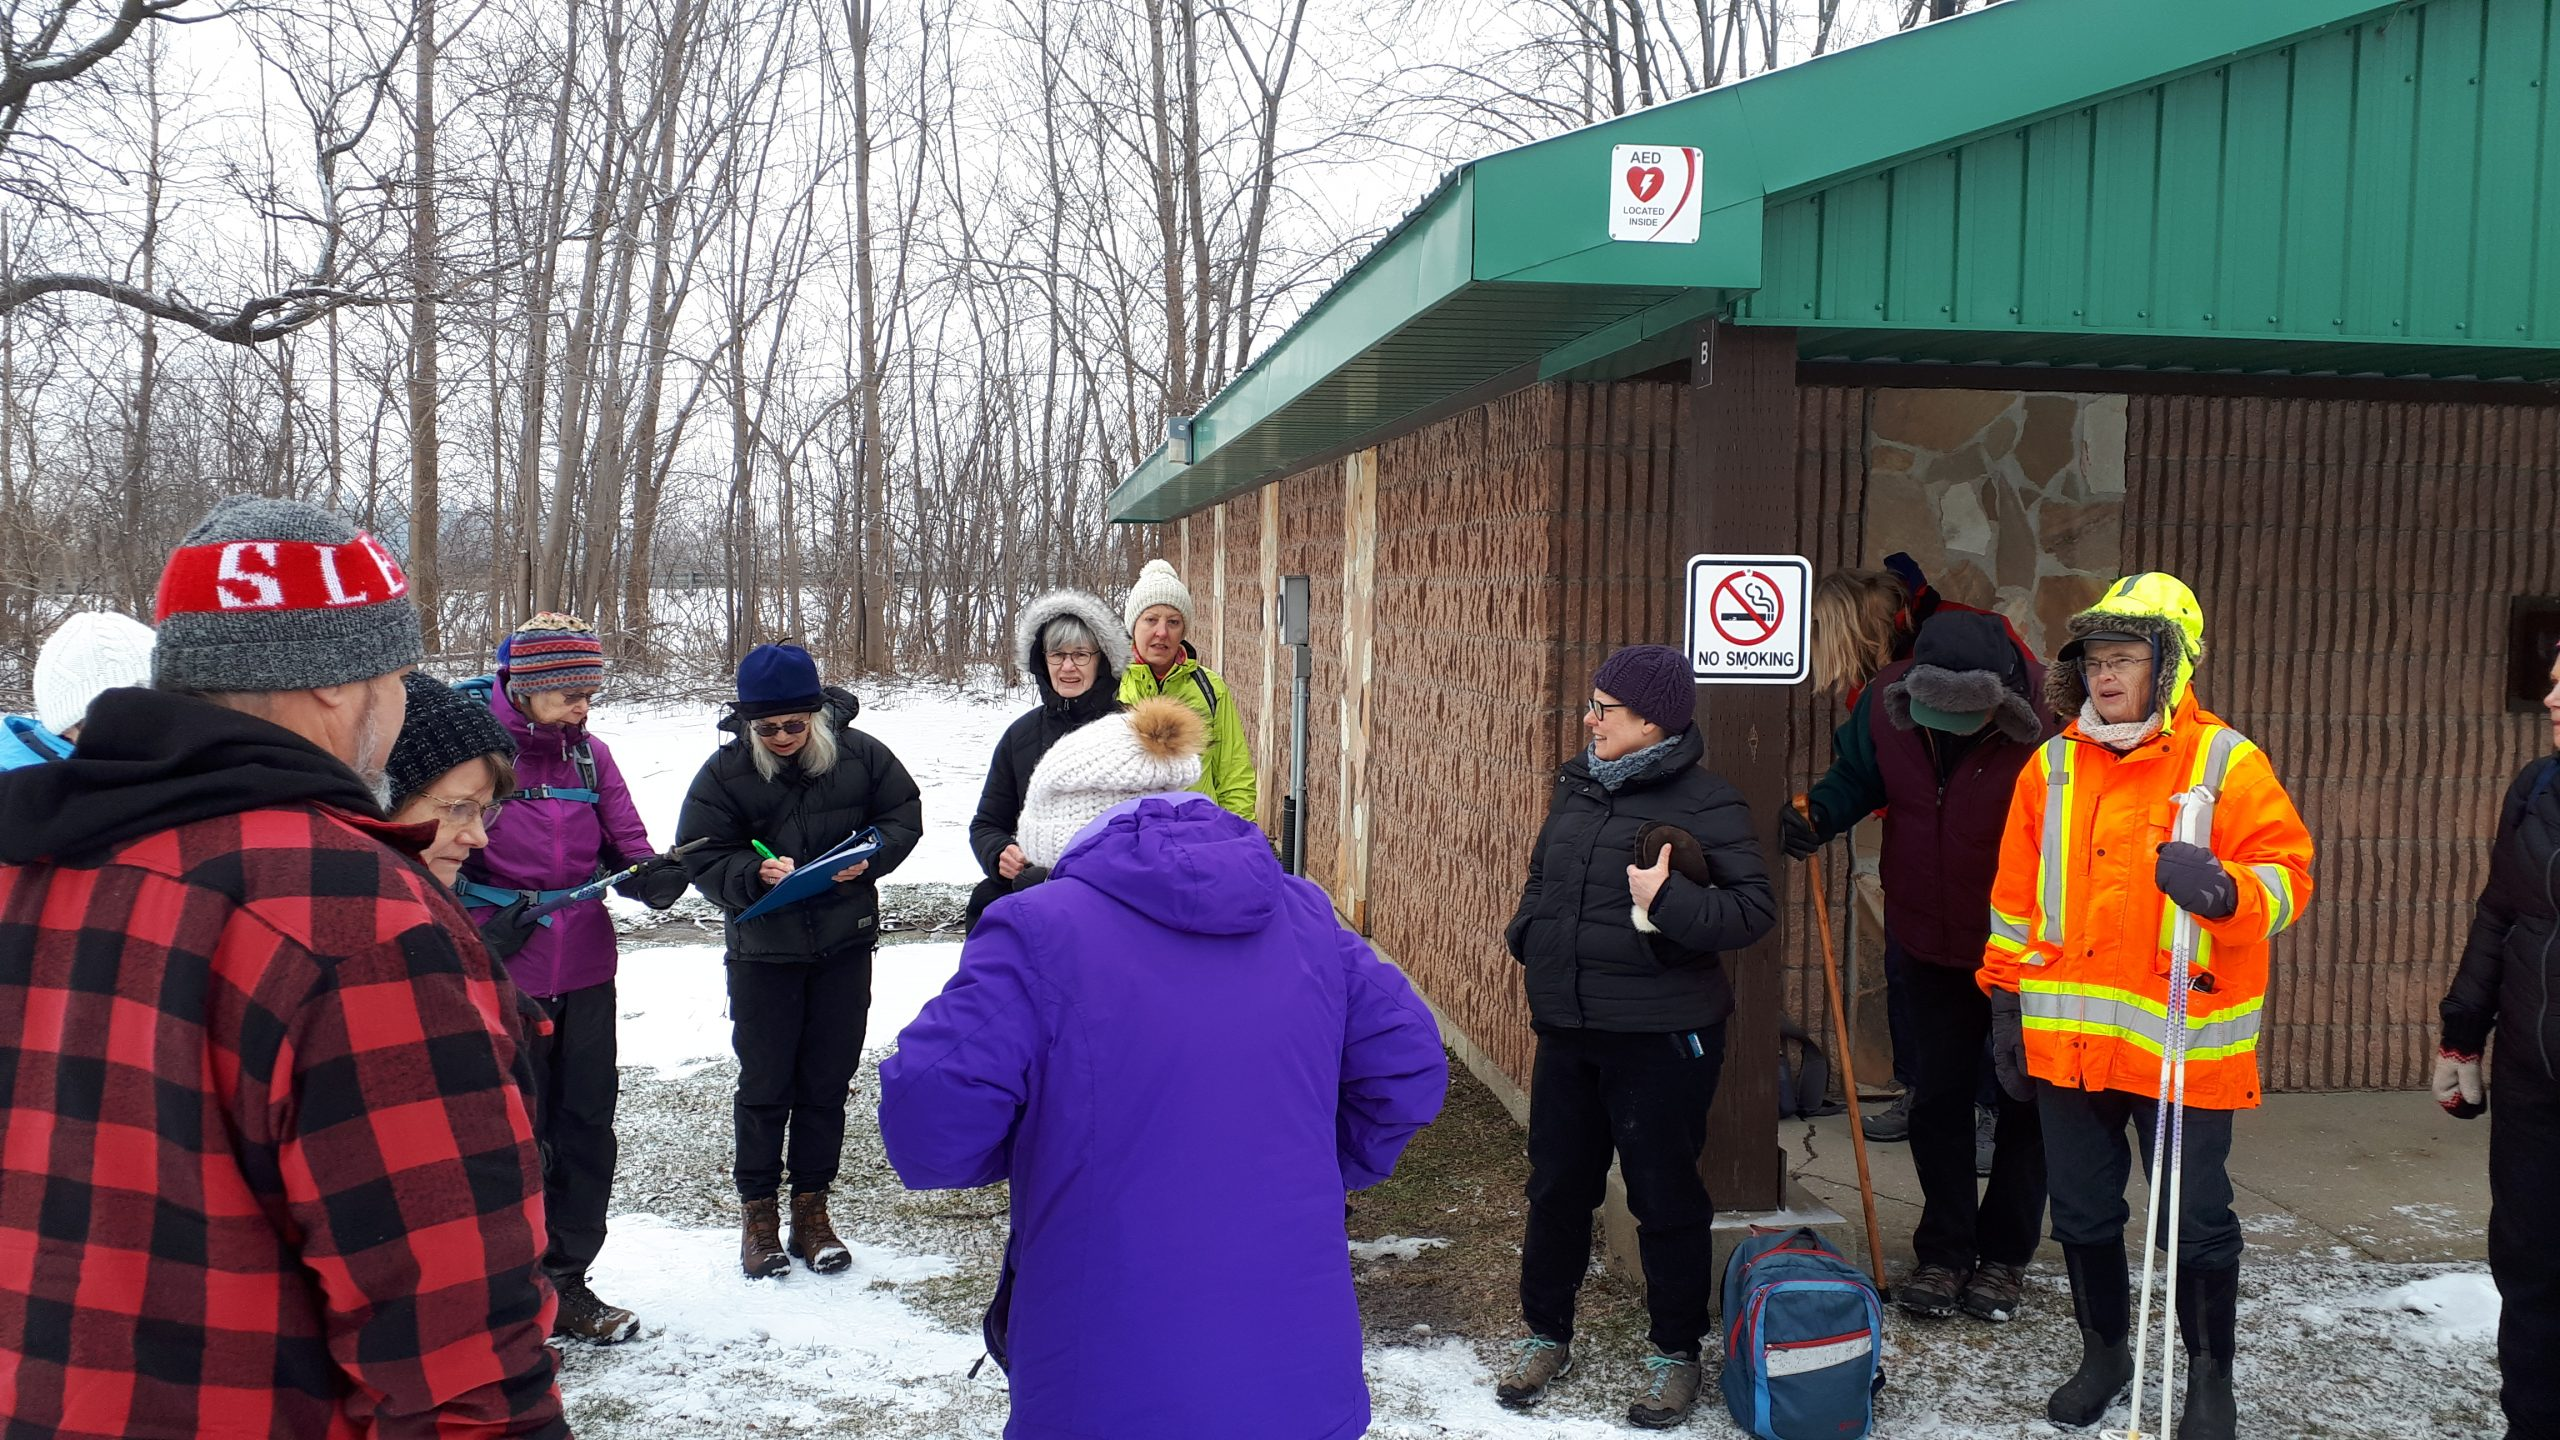 Signing up before starting hike.